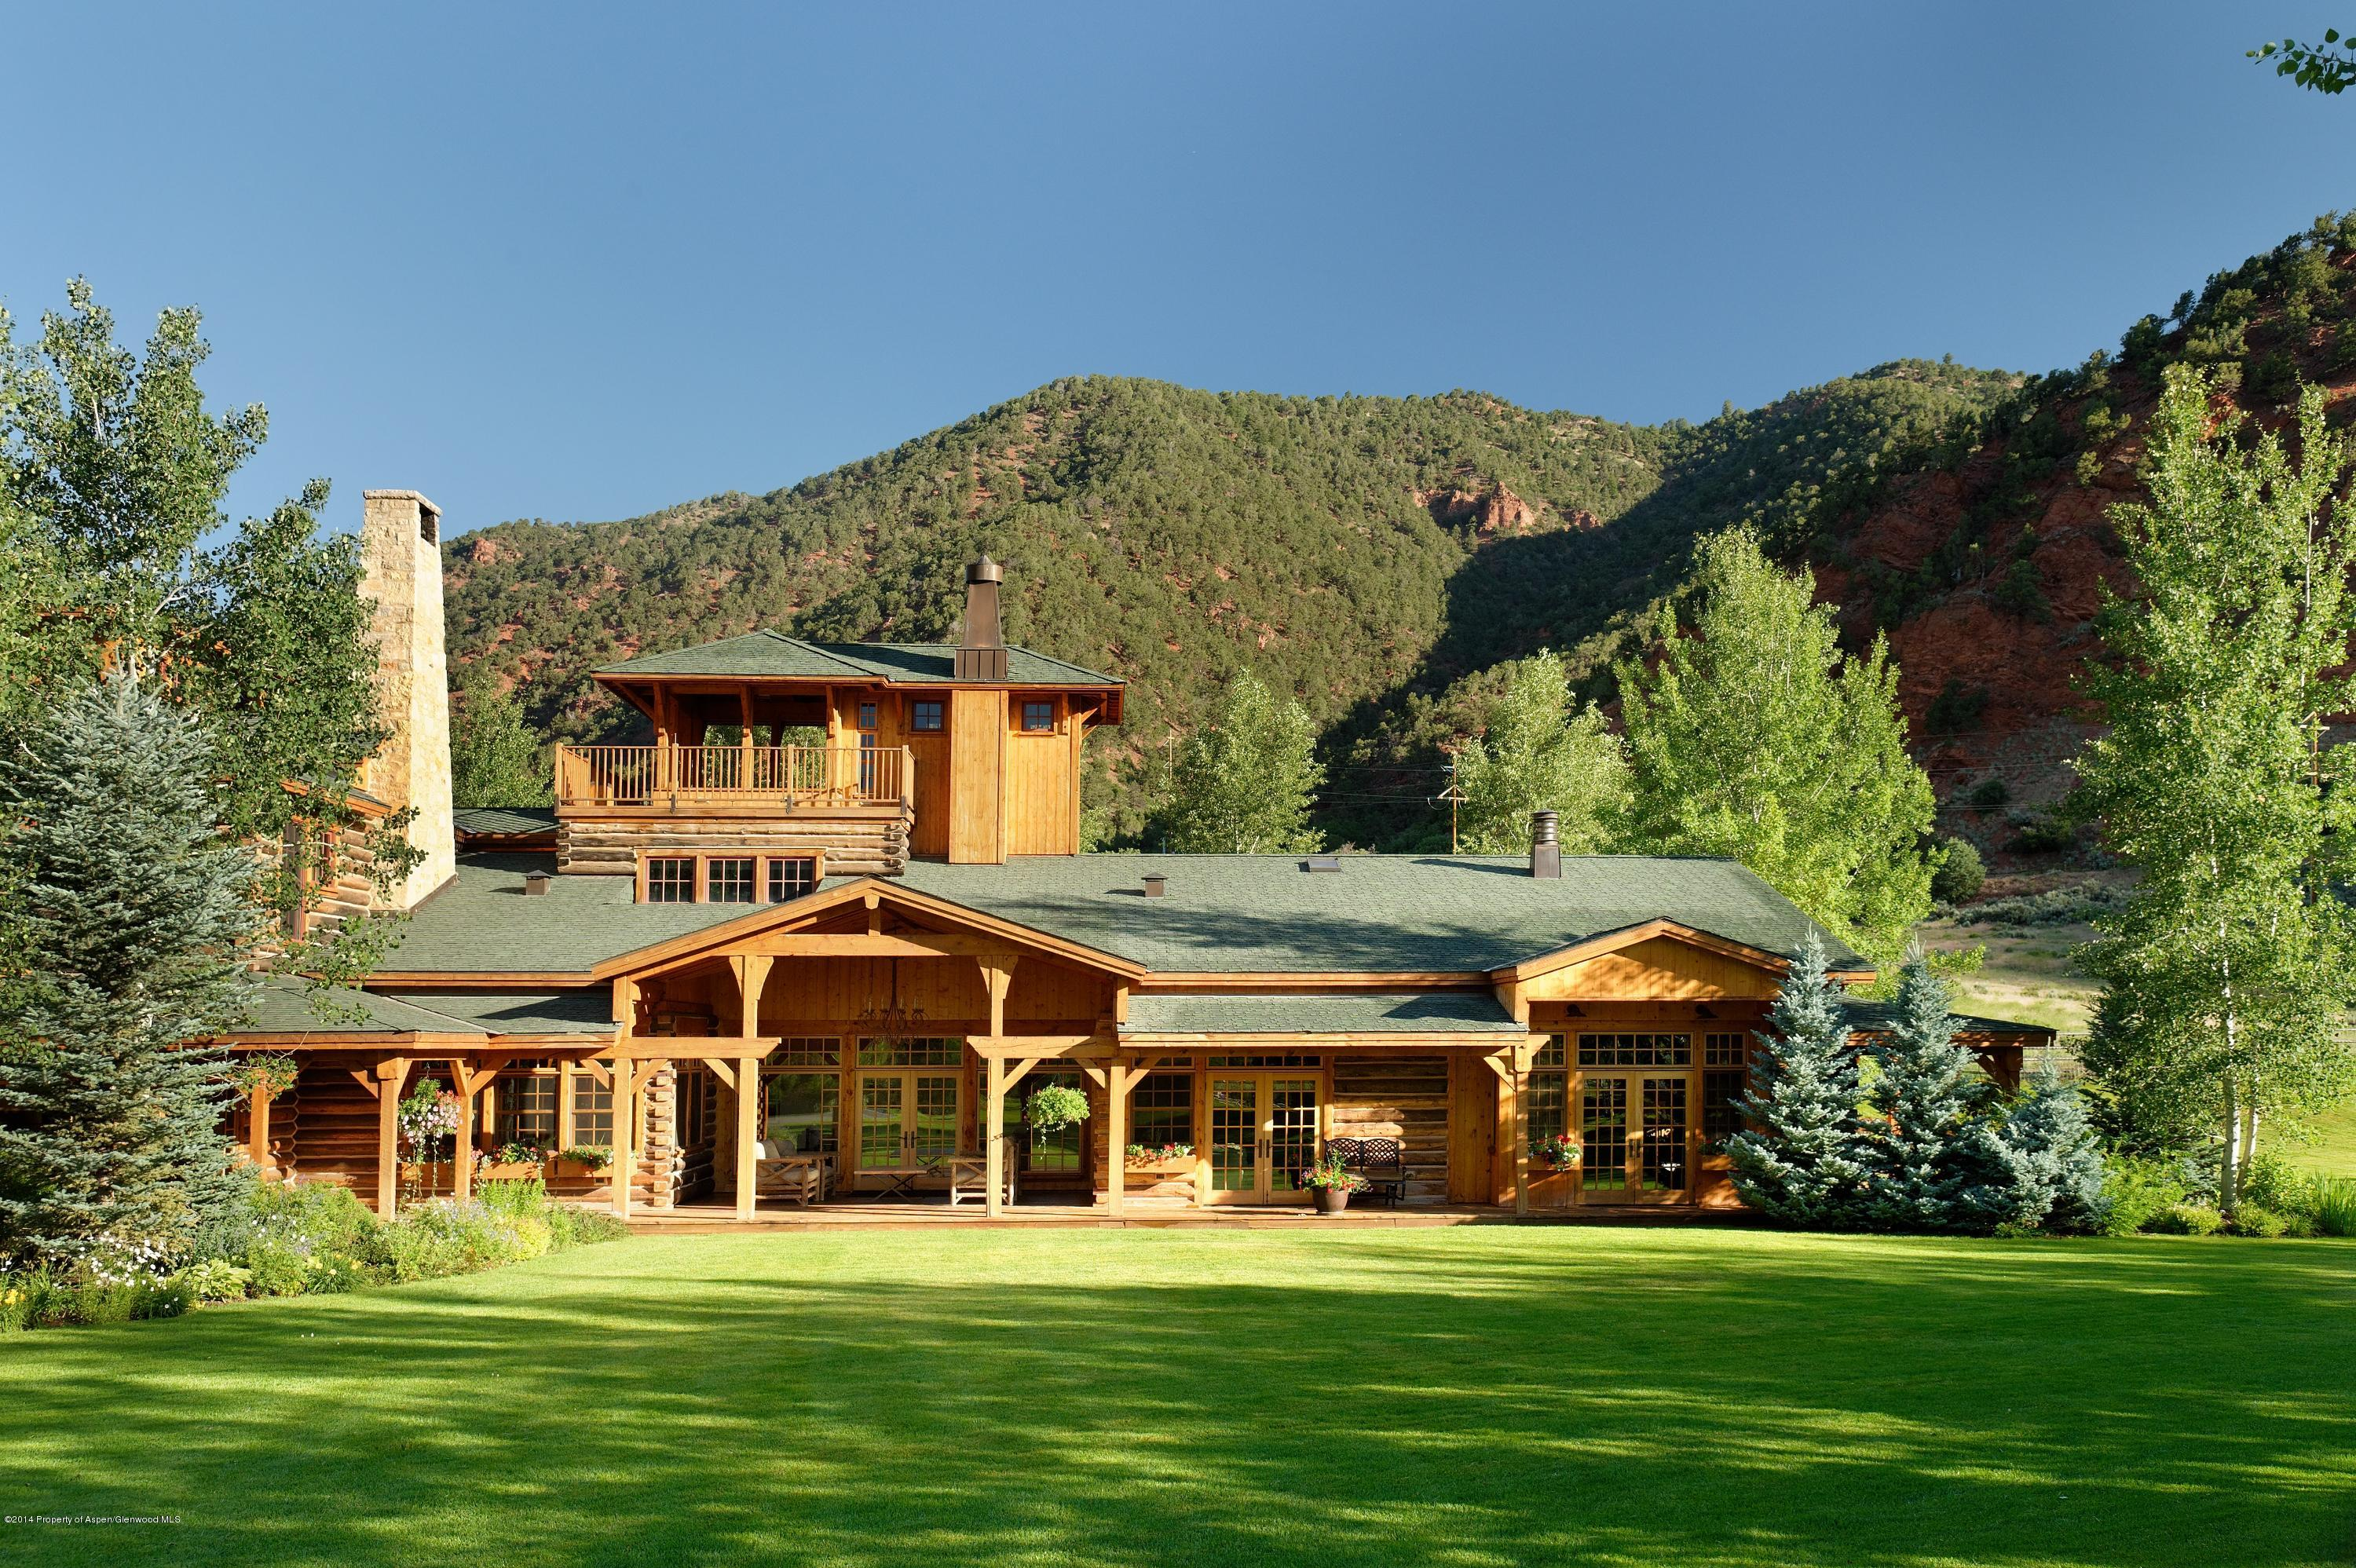 MLS# 135595 - 40 - 50 E River Ranch Road, Snowmass, CO 81654